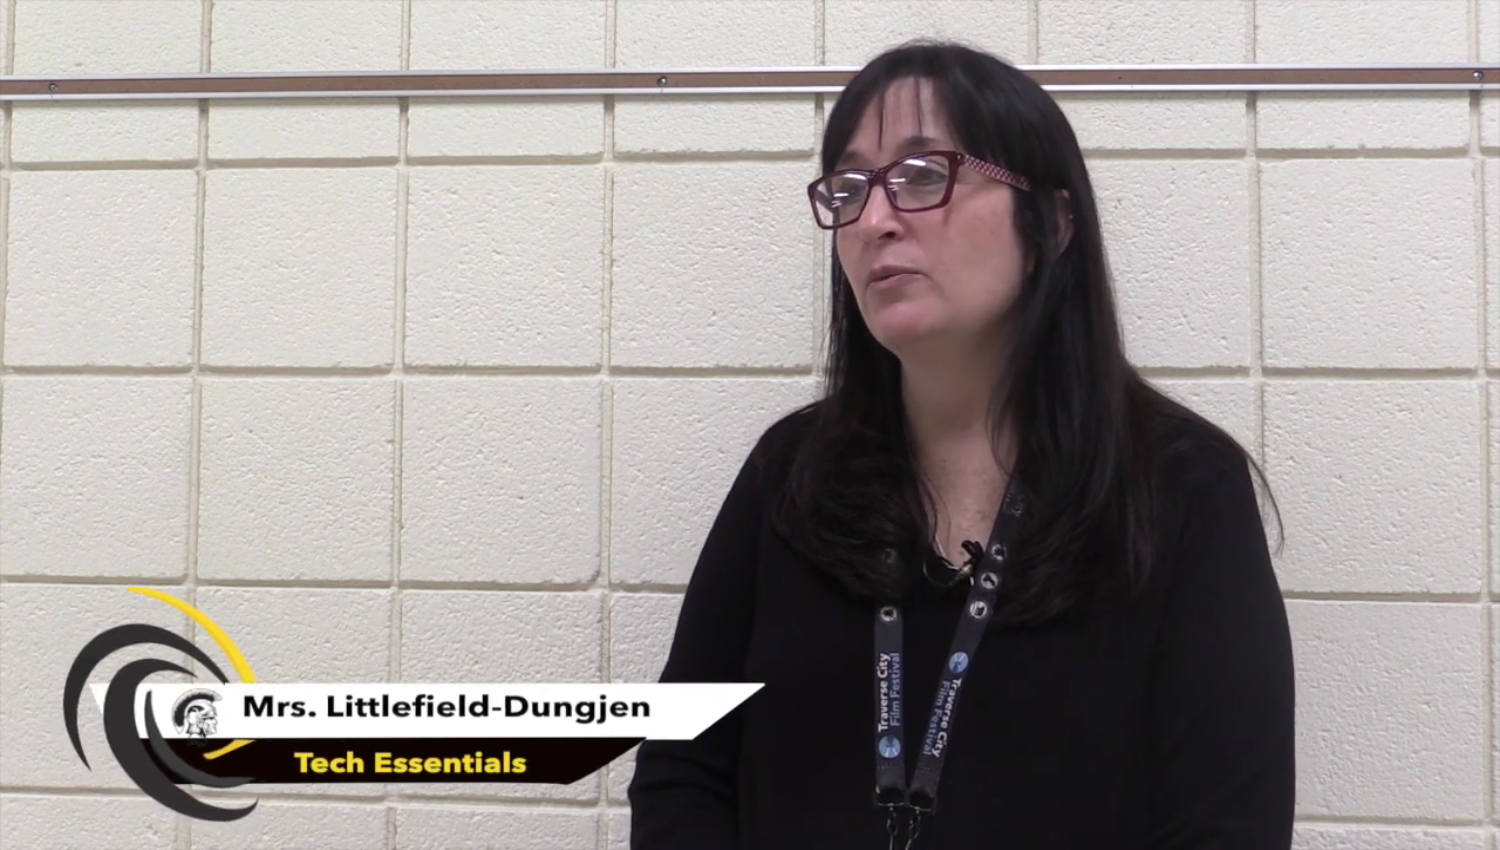 Mrs. Little-field  Dungeon gives you a closer look into what tech central does at EMS